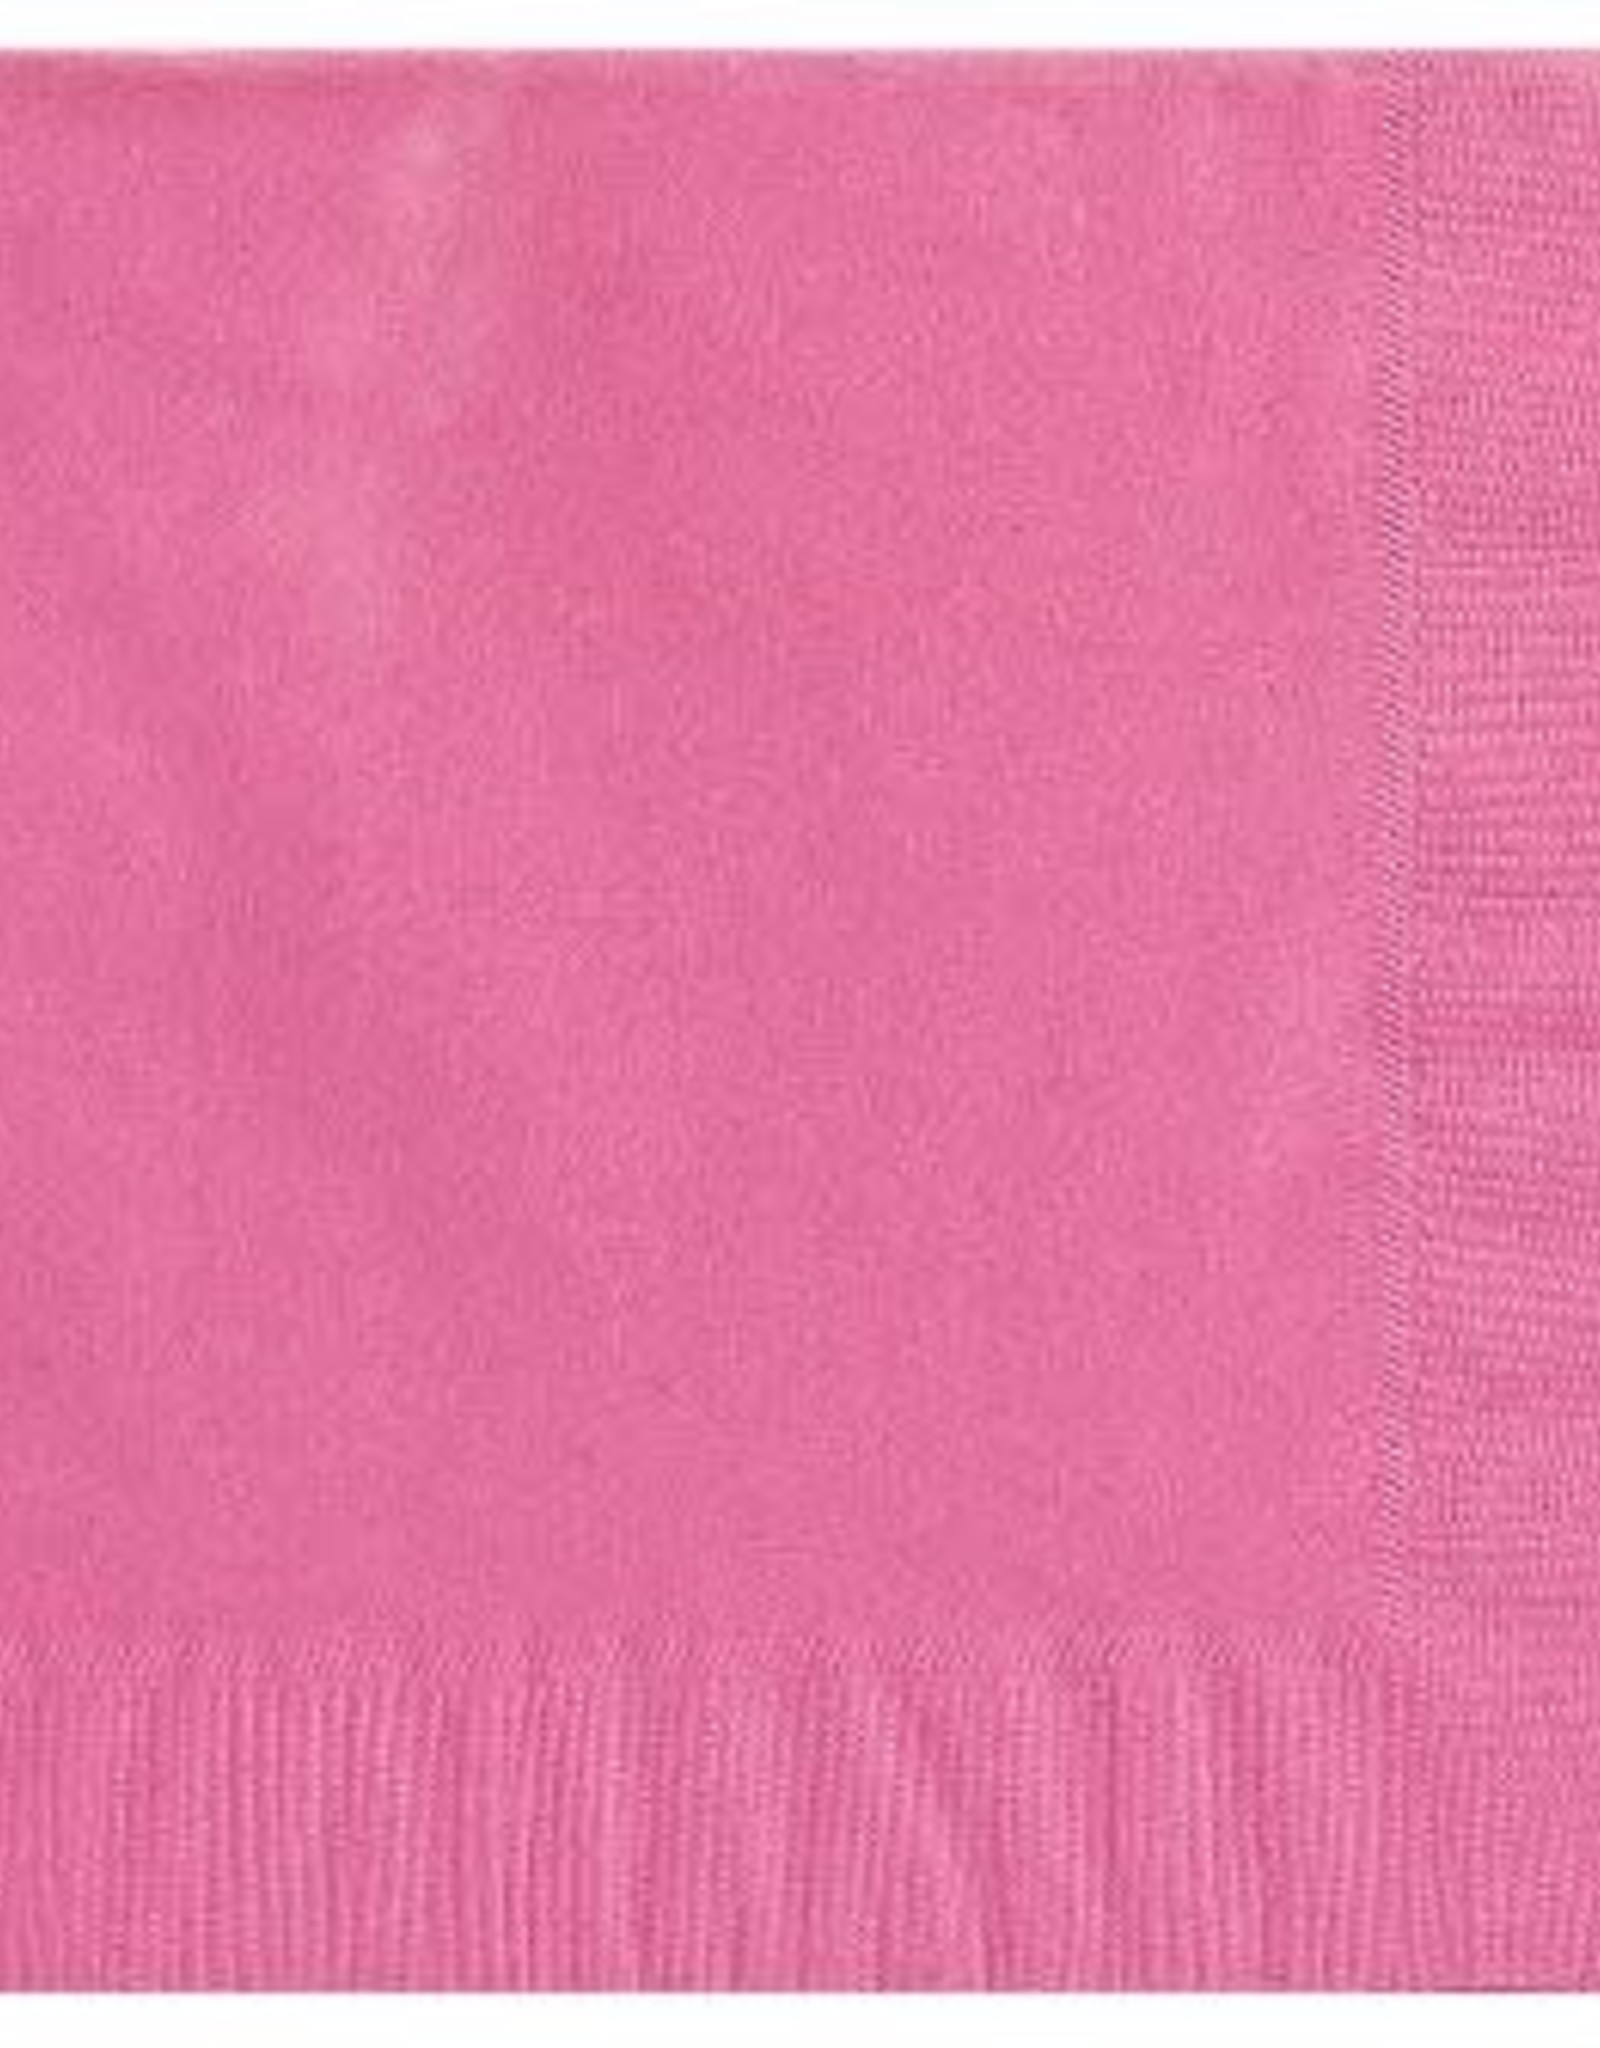 Bright Pink Cocktail Napkins 50ct